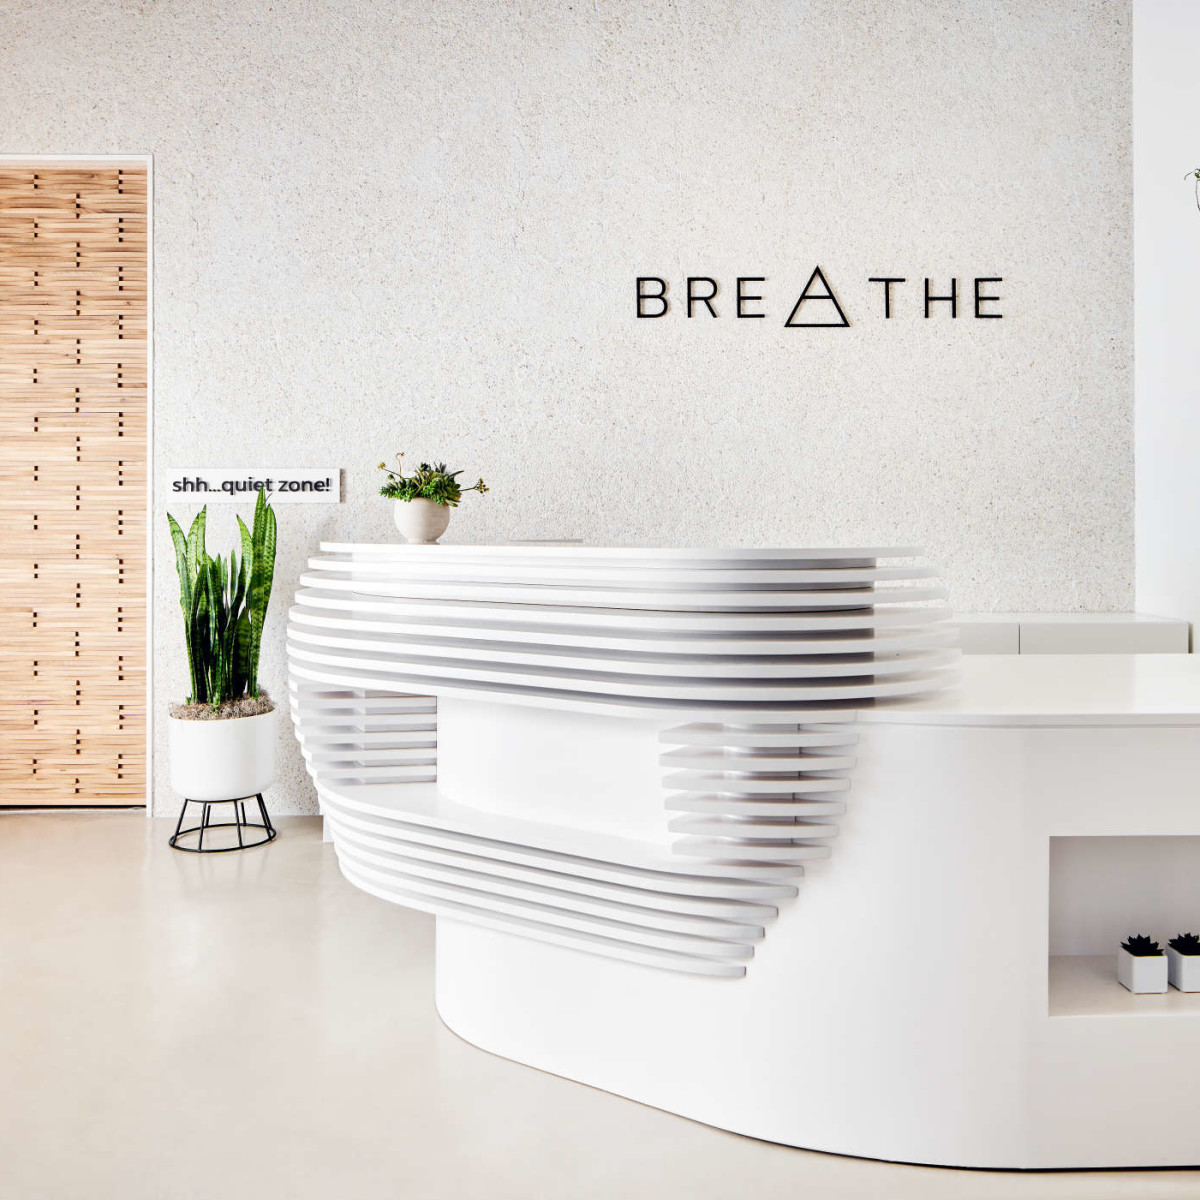 Breathe desk door